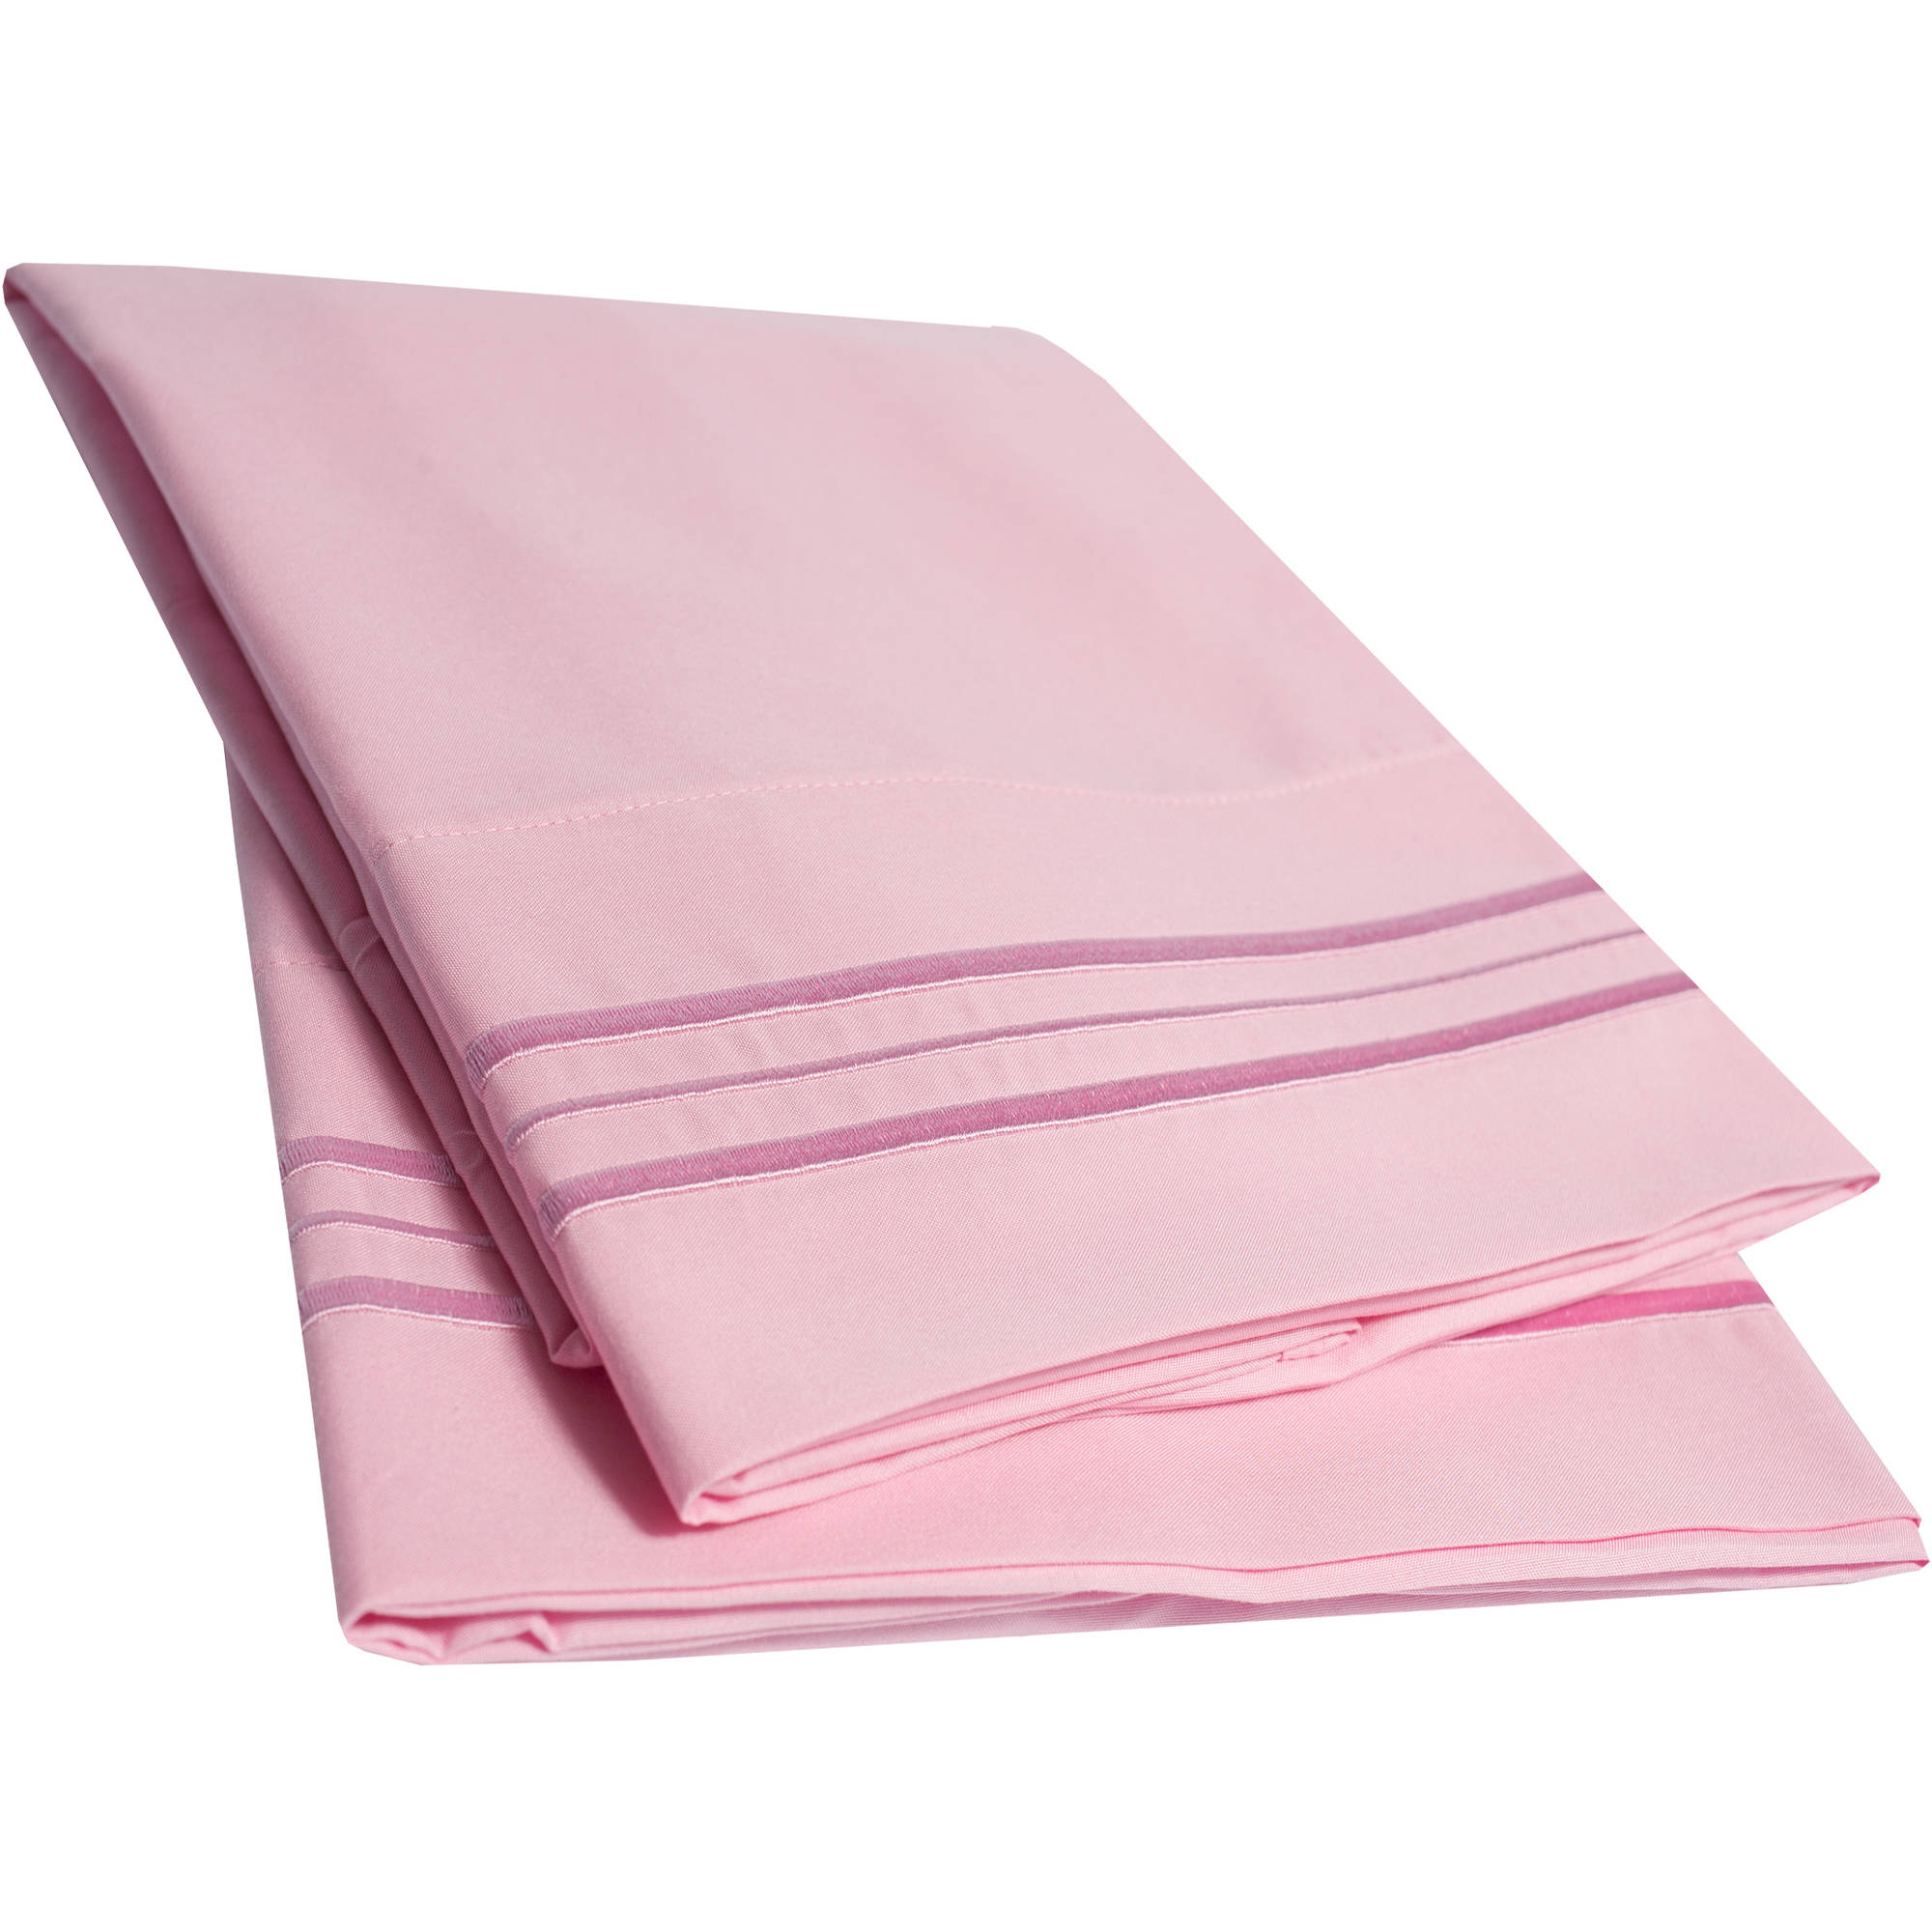 Sweet Home Collection Ultra-Soft 1500 Series Microfiber Embroidered Pillowcase, 2-Pack